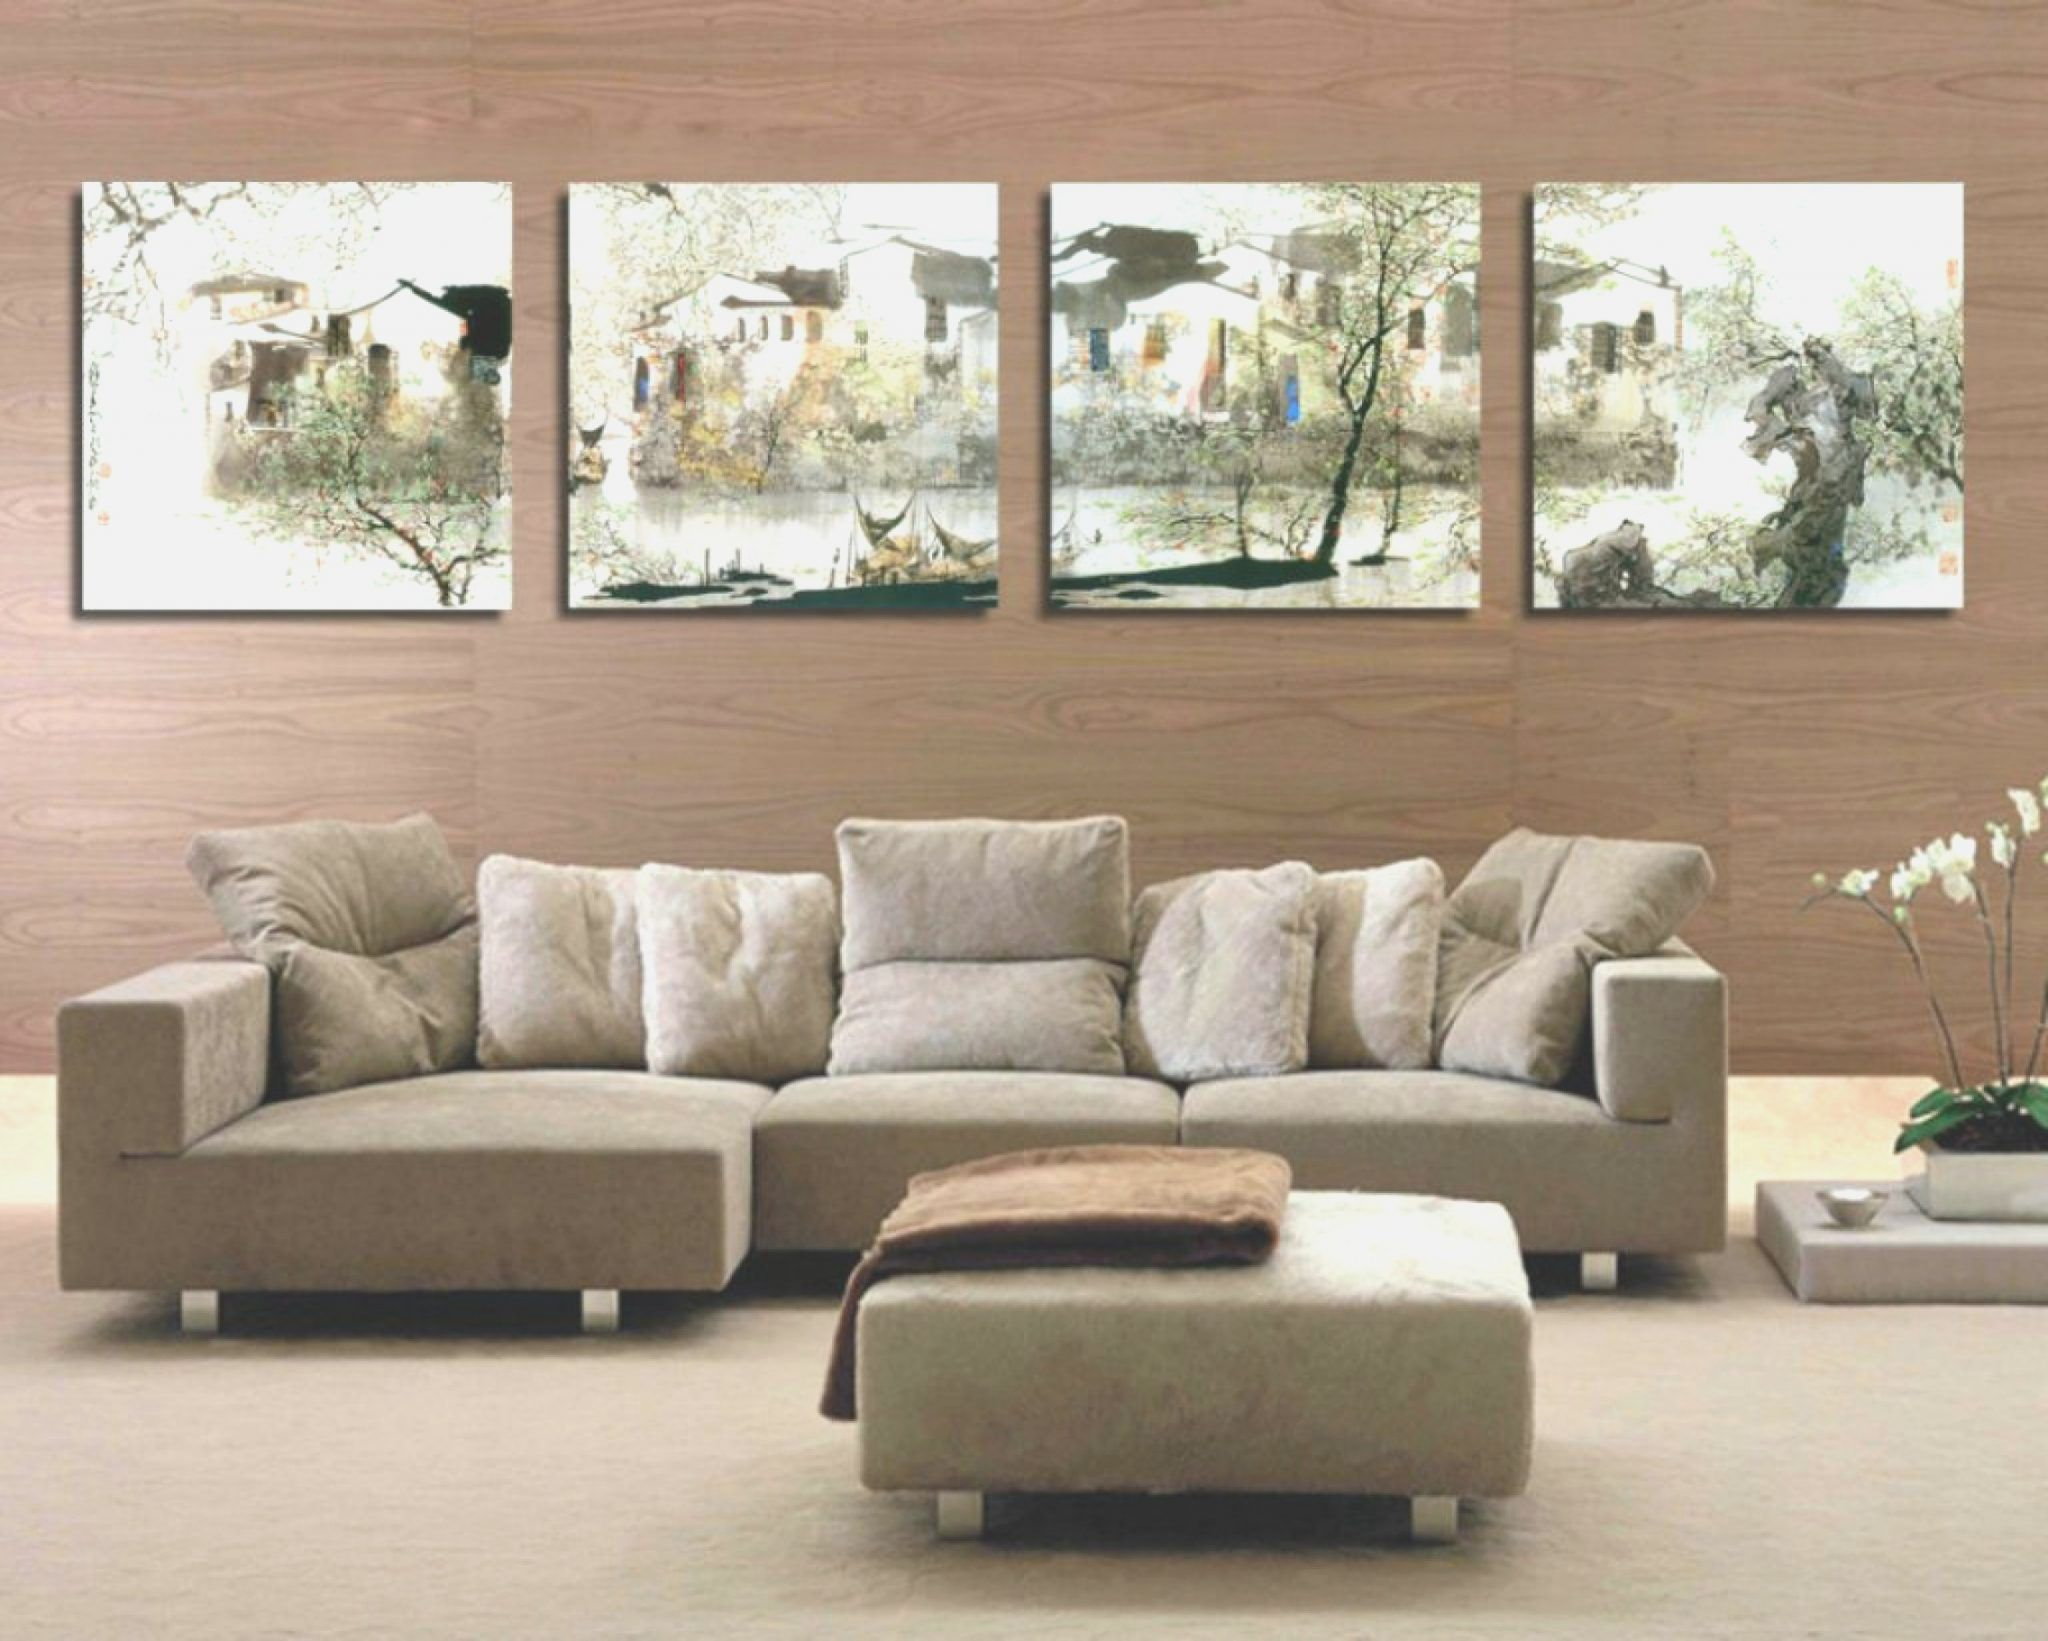 Wall Prints For Living Room Australia Living Room Wall Art Ideas Living Room Wall Art Arrangements